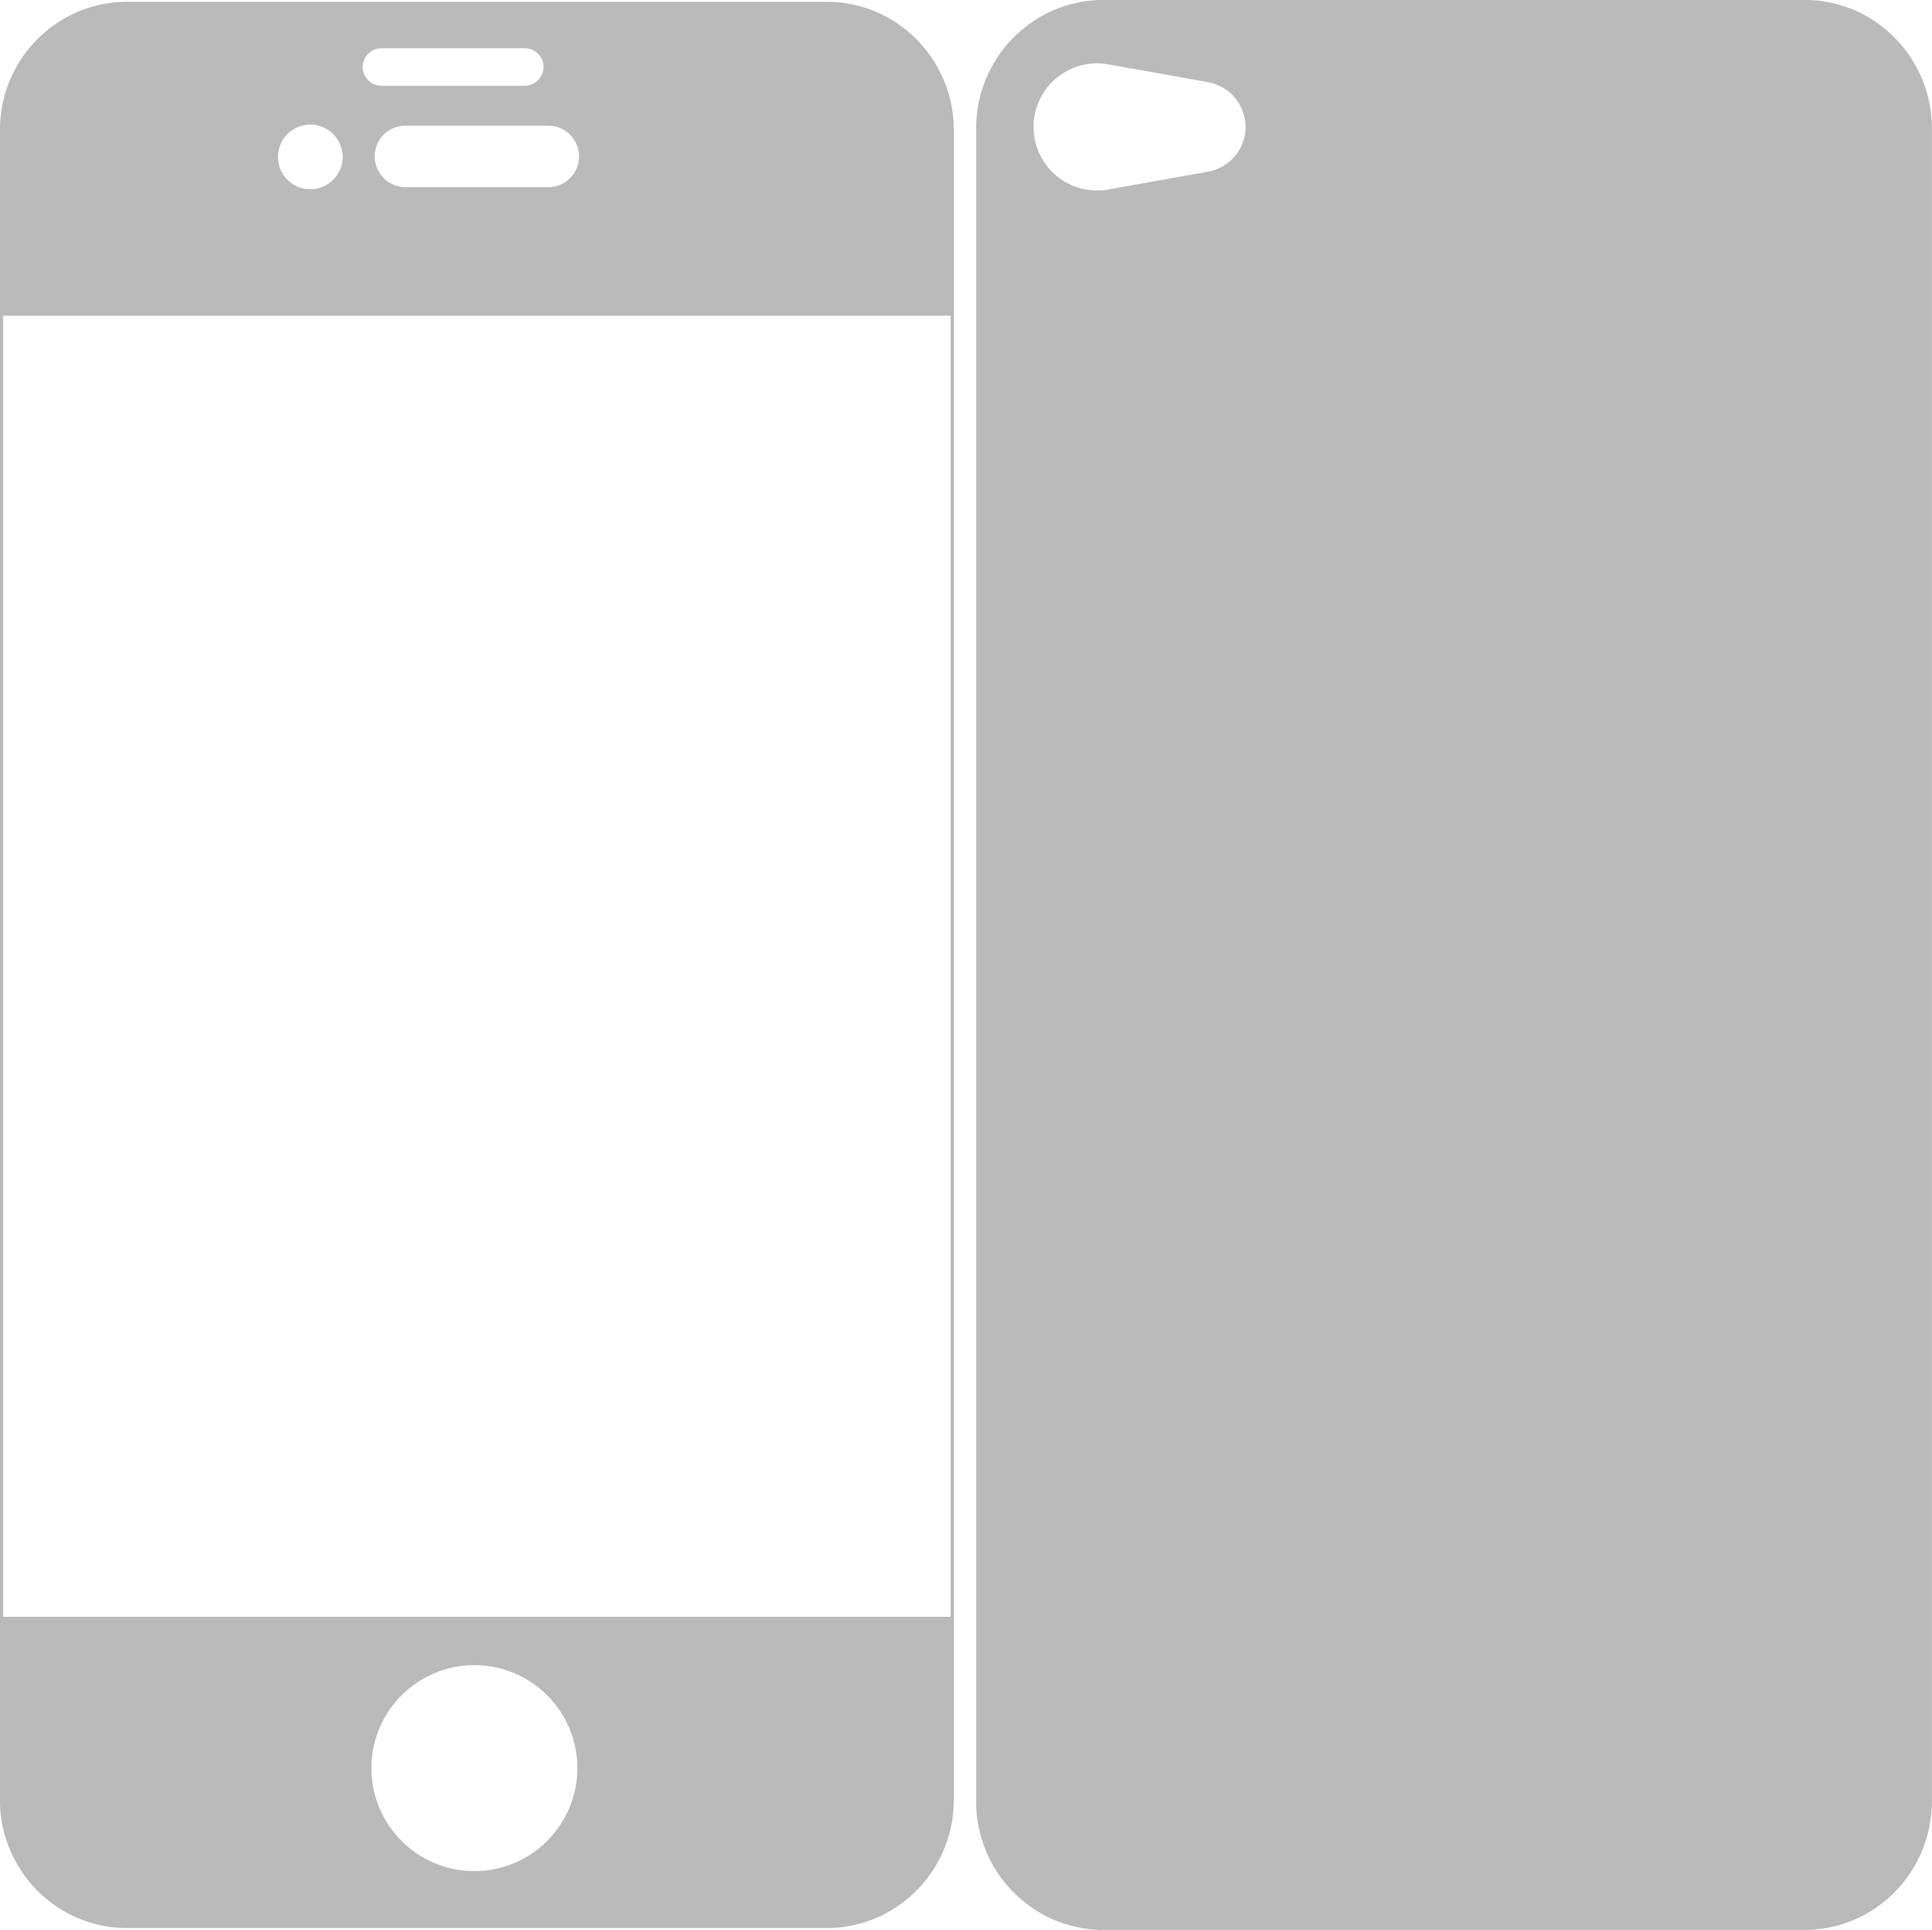 Iphone 4 Png Template | www.imgkid.com - The Image Kid Has It!